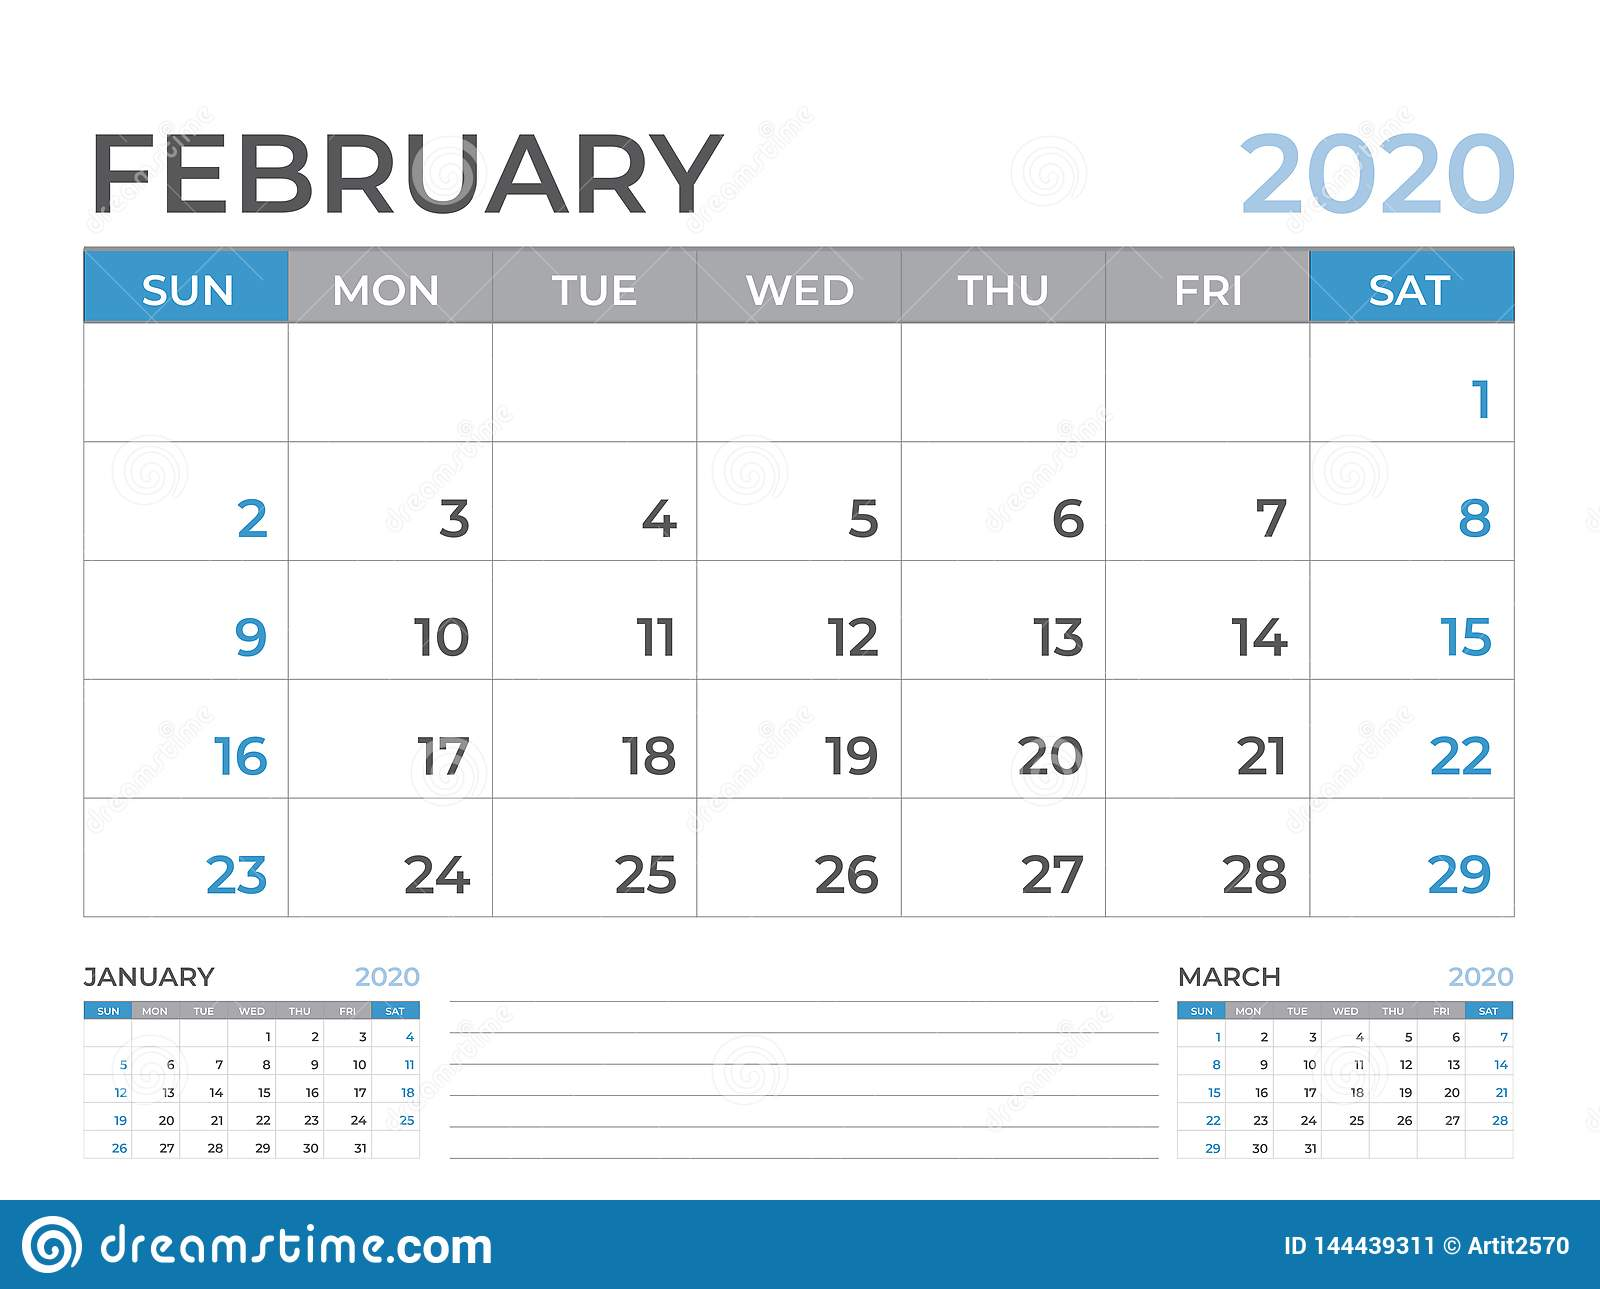 Full Size Printable February Calendar 2020 February 2020 Calendar Template, Desk Calendar Layout Size 8 X 6